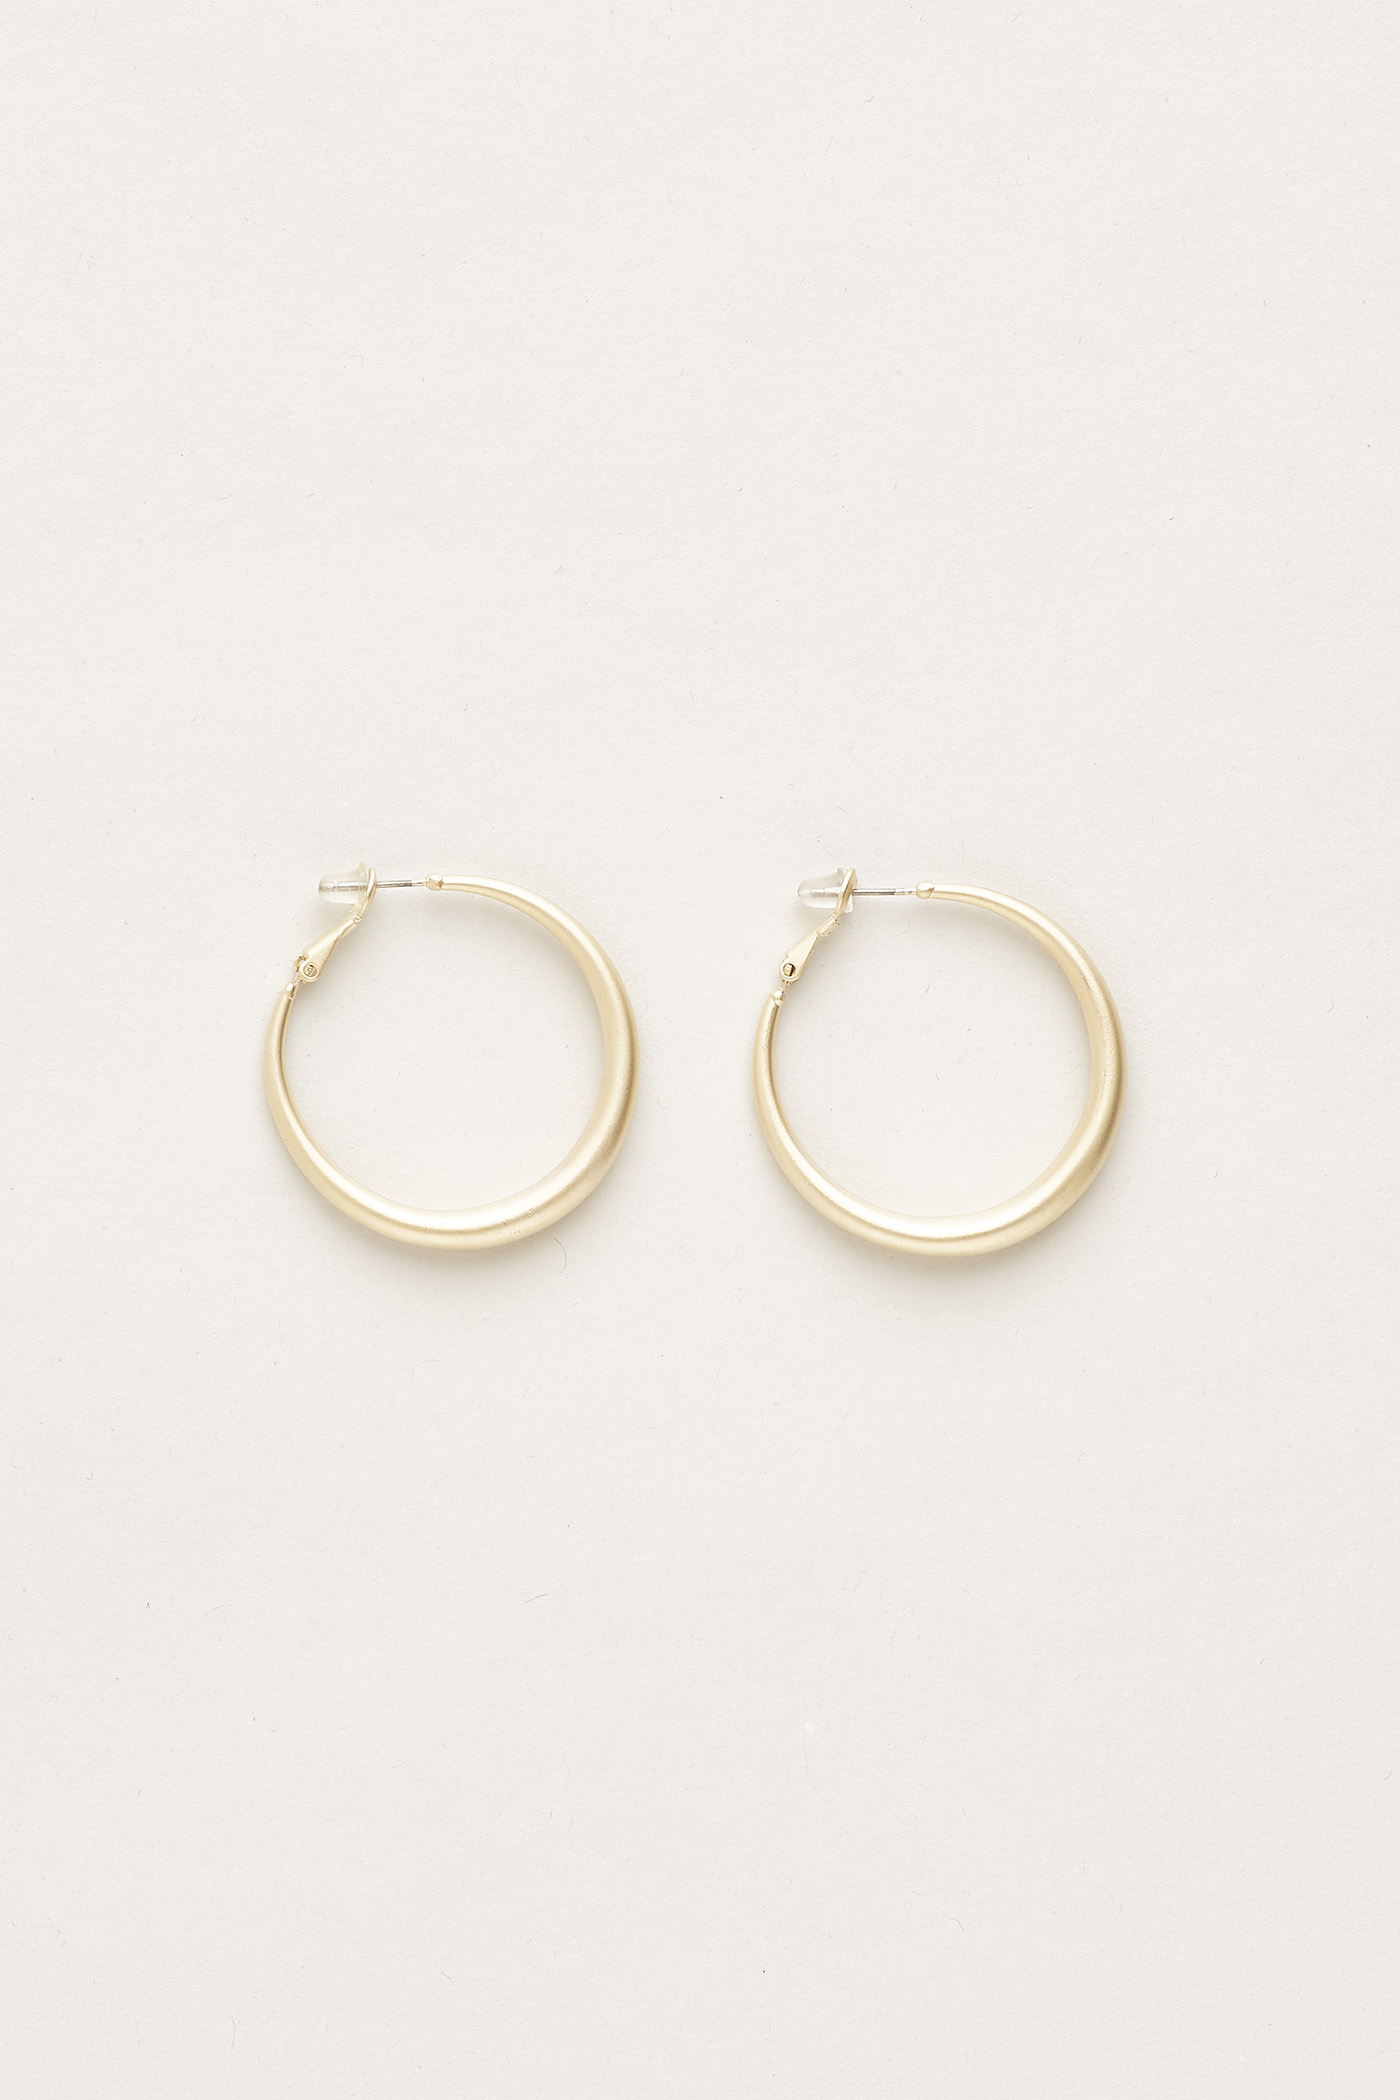 Justave Hinge Hoop Earrings